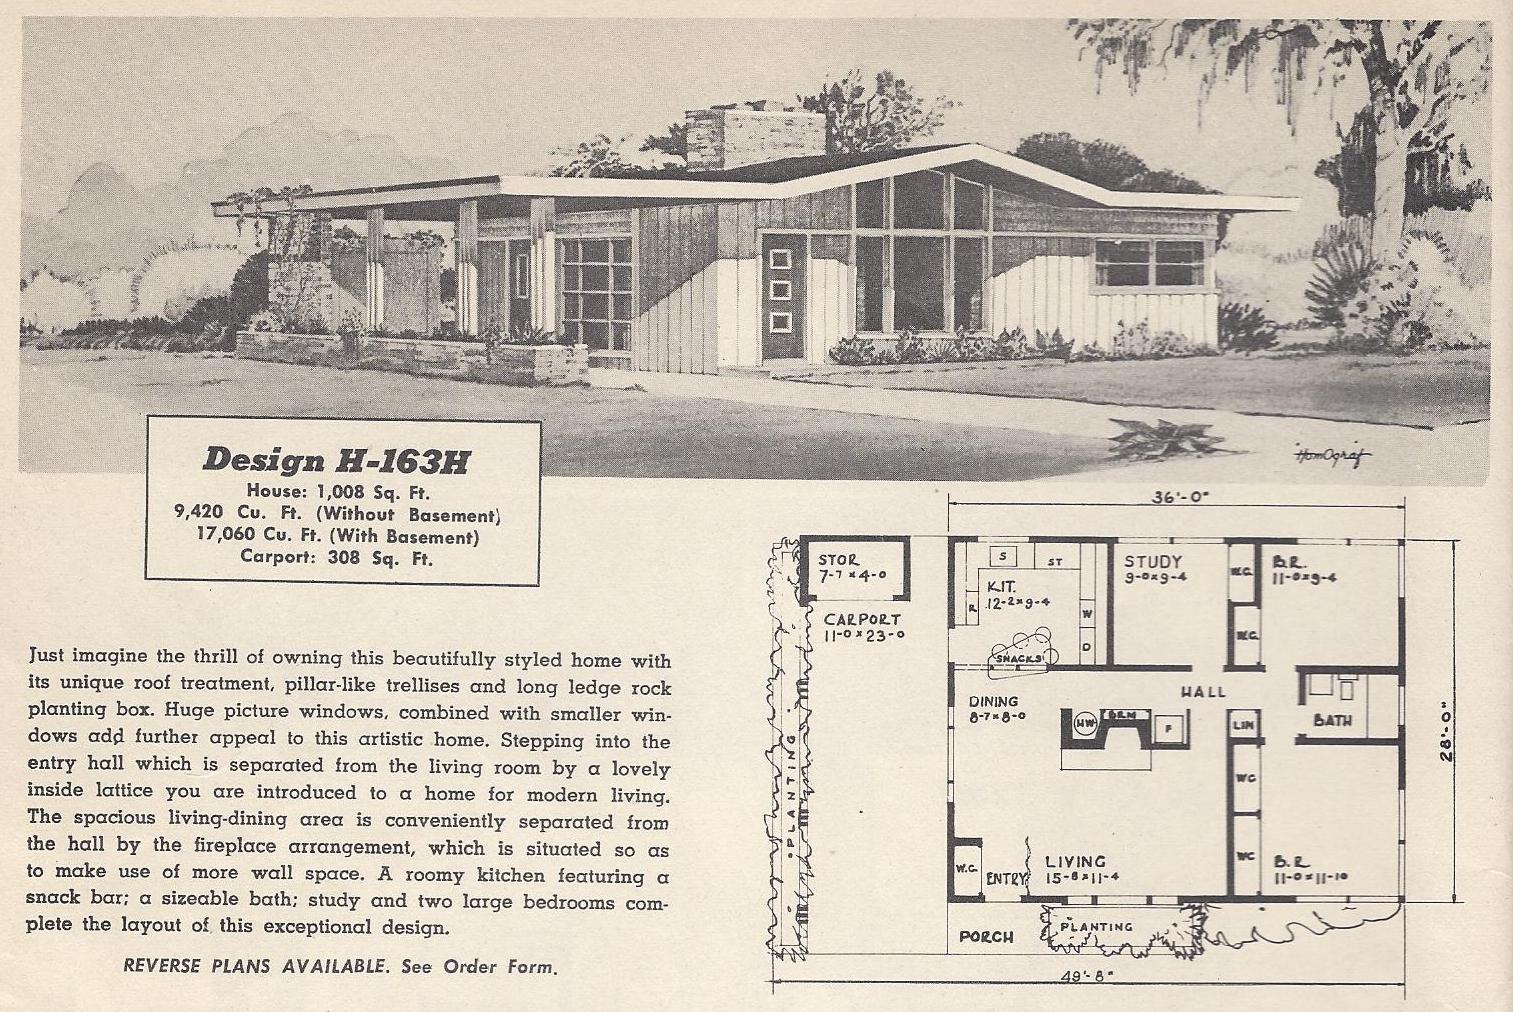 Vintage house plans 163h antique alter ego for Vintage ranch house plans